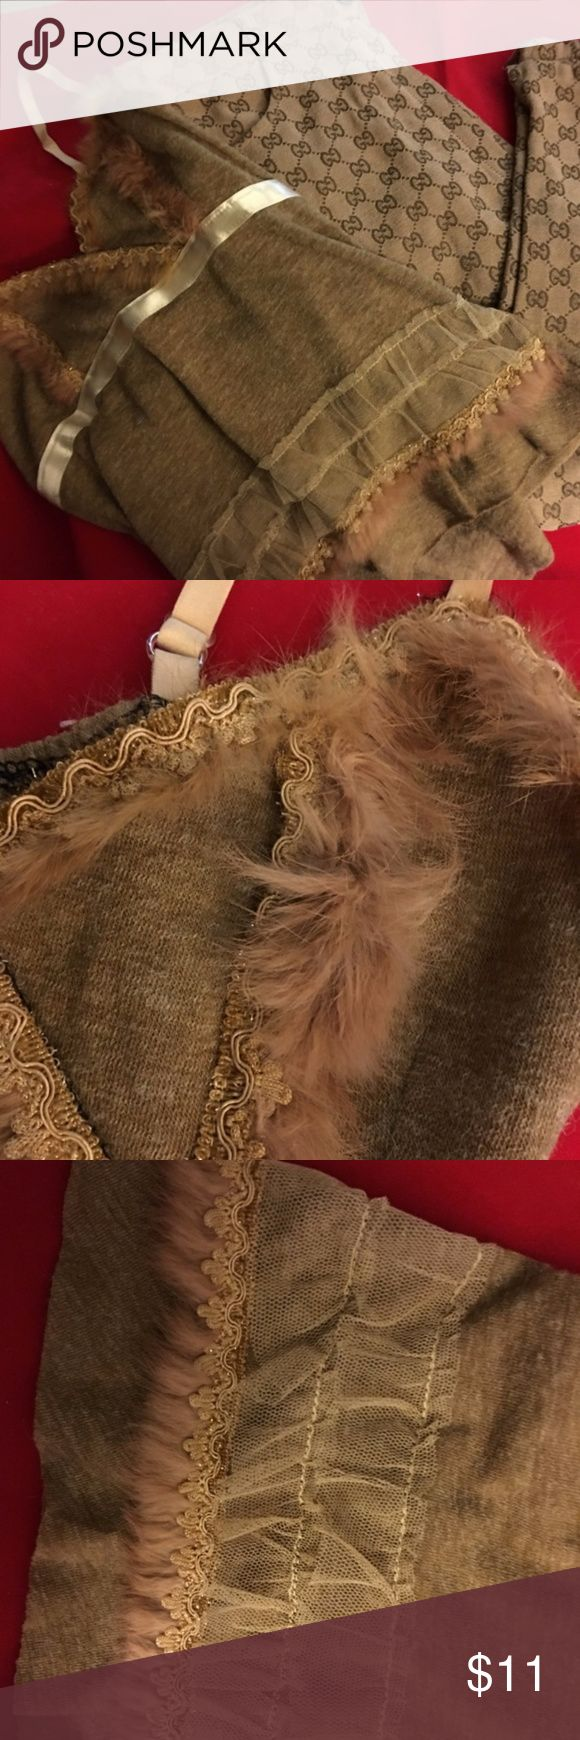 """Olive Khaki Hand Made Cami Top Lace & Fur TOP ONLY! Super sexy little top, with lace, ribbon and fur trim. No labels, this was made by my friends mom. Has adjustable elastic straps. Size would be """"one size fits most"""" I guess. Slacks are available separately. Please ask if interested. Hand Made Tops Camisoles"""